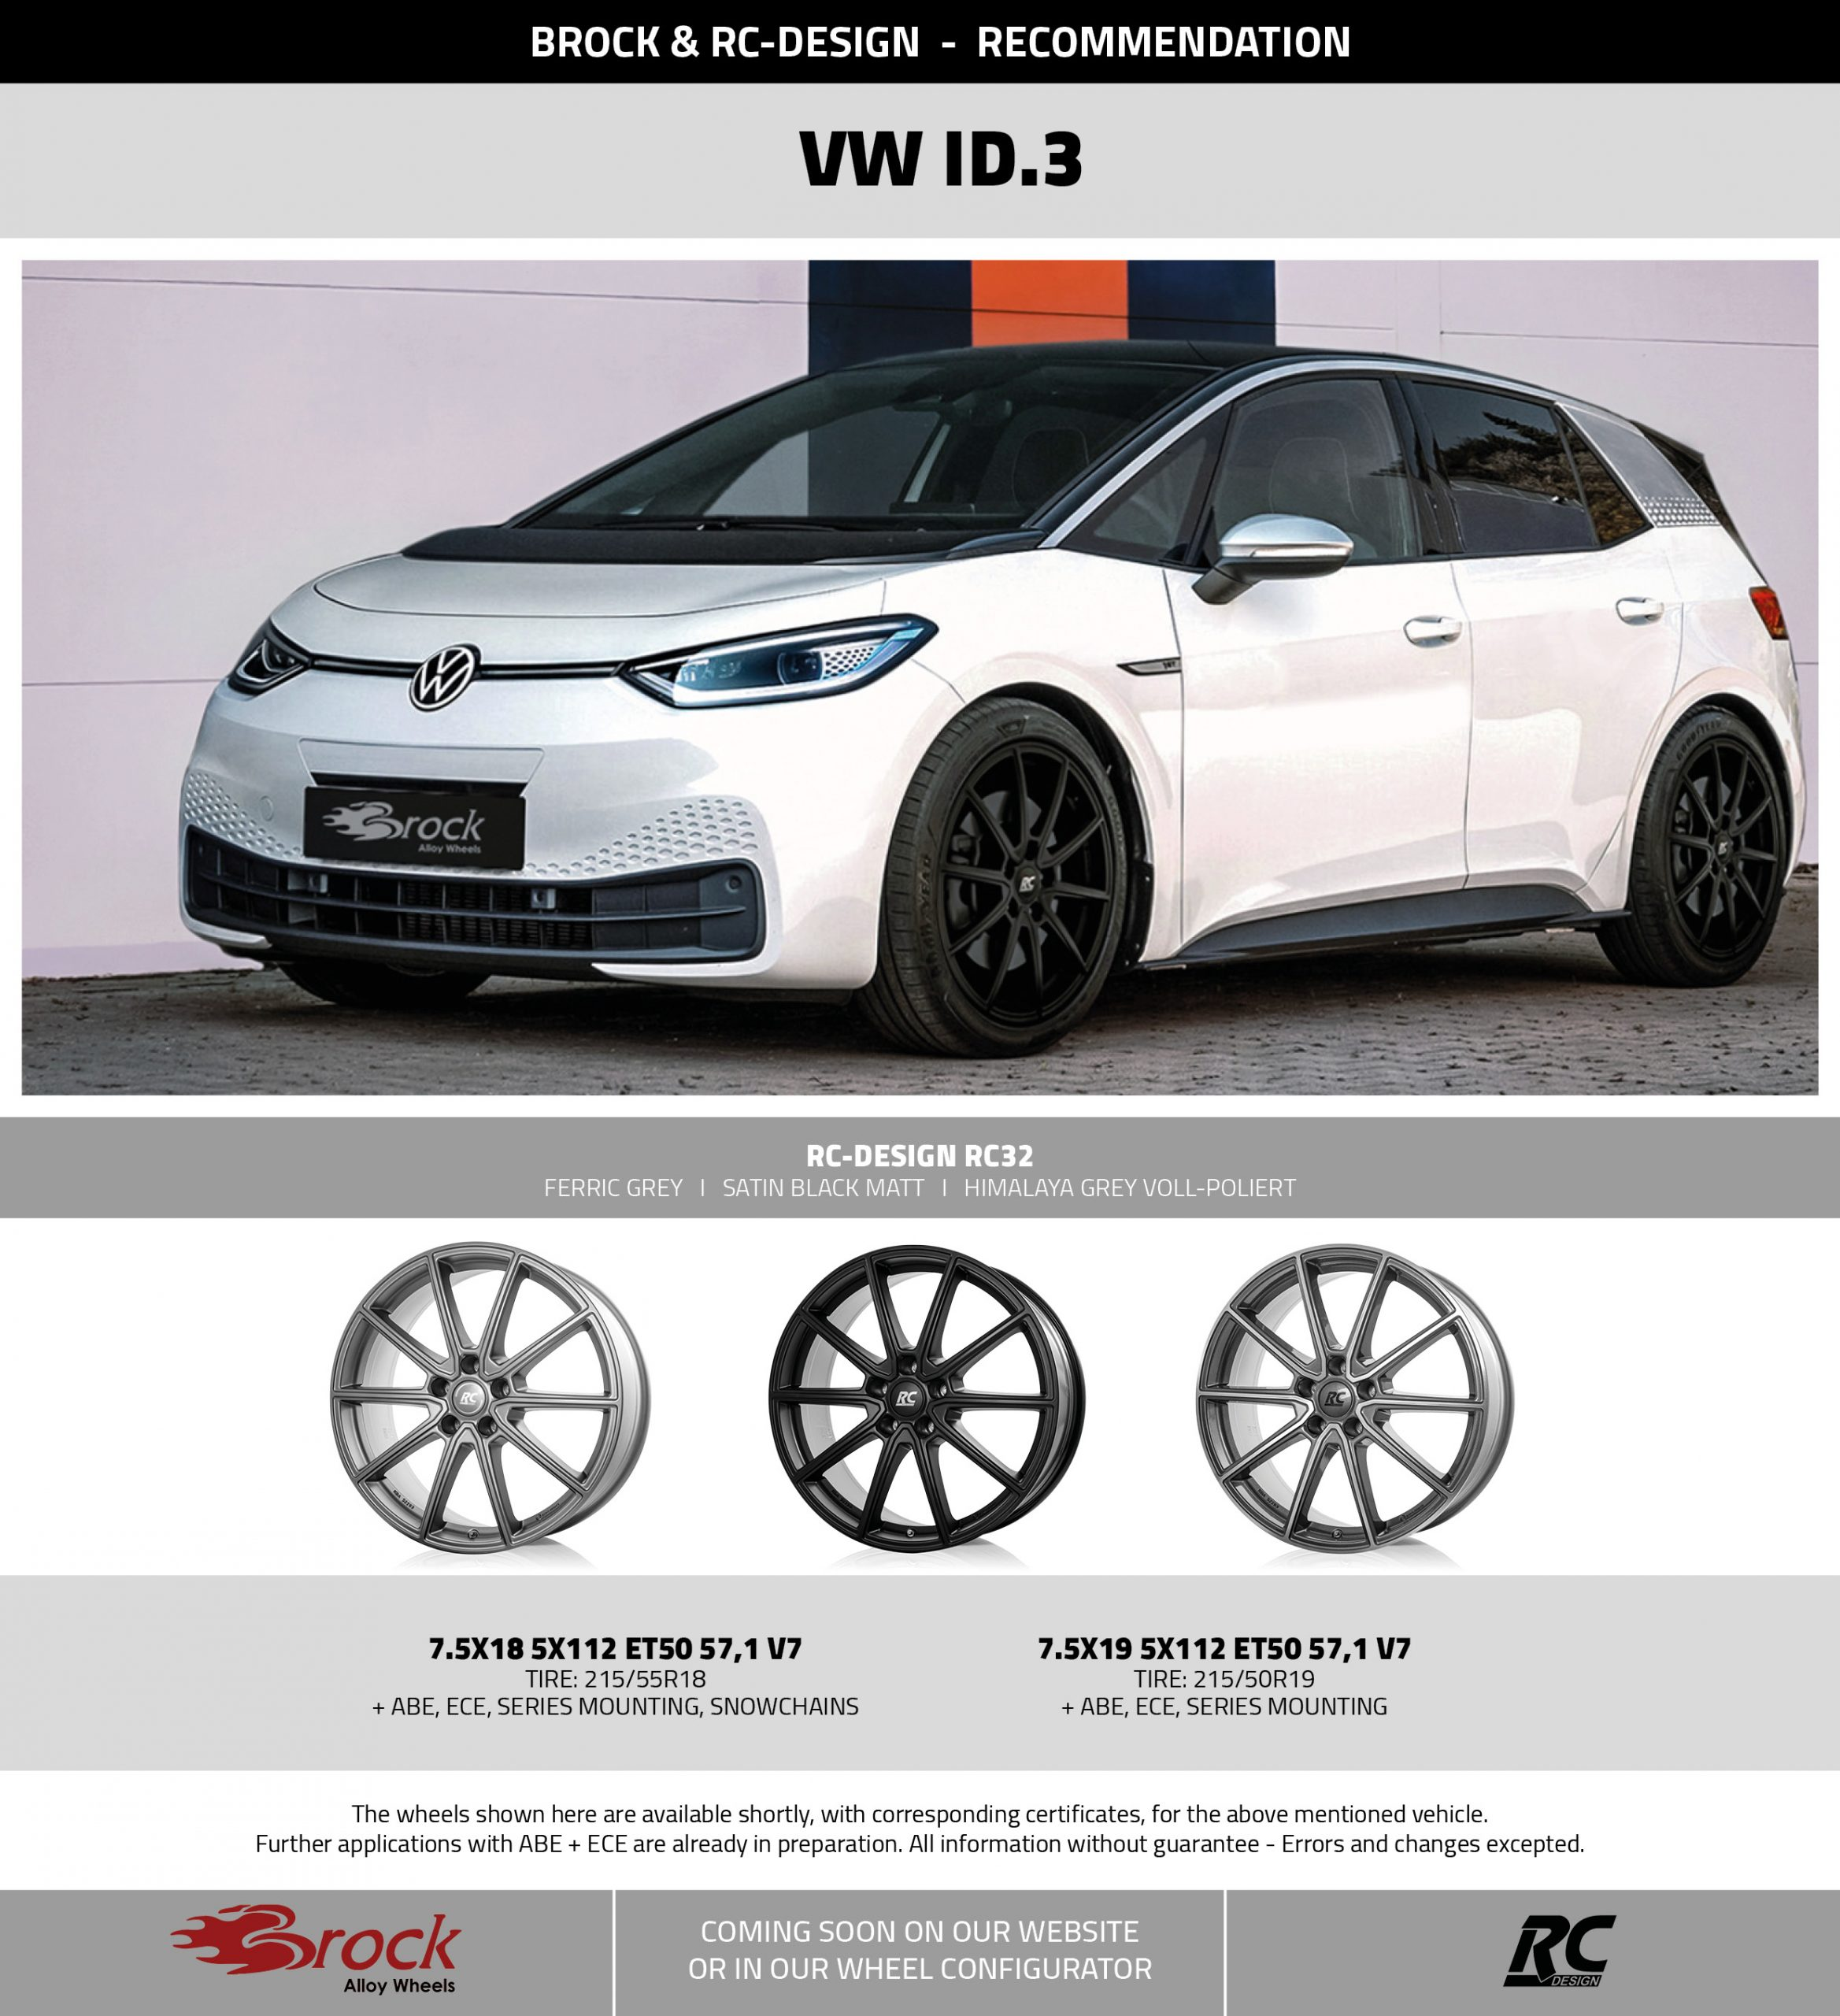 Recommendation VW ID.3